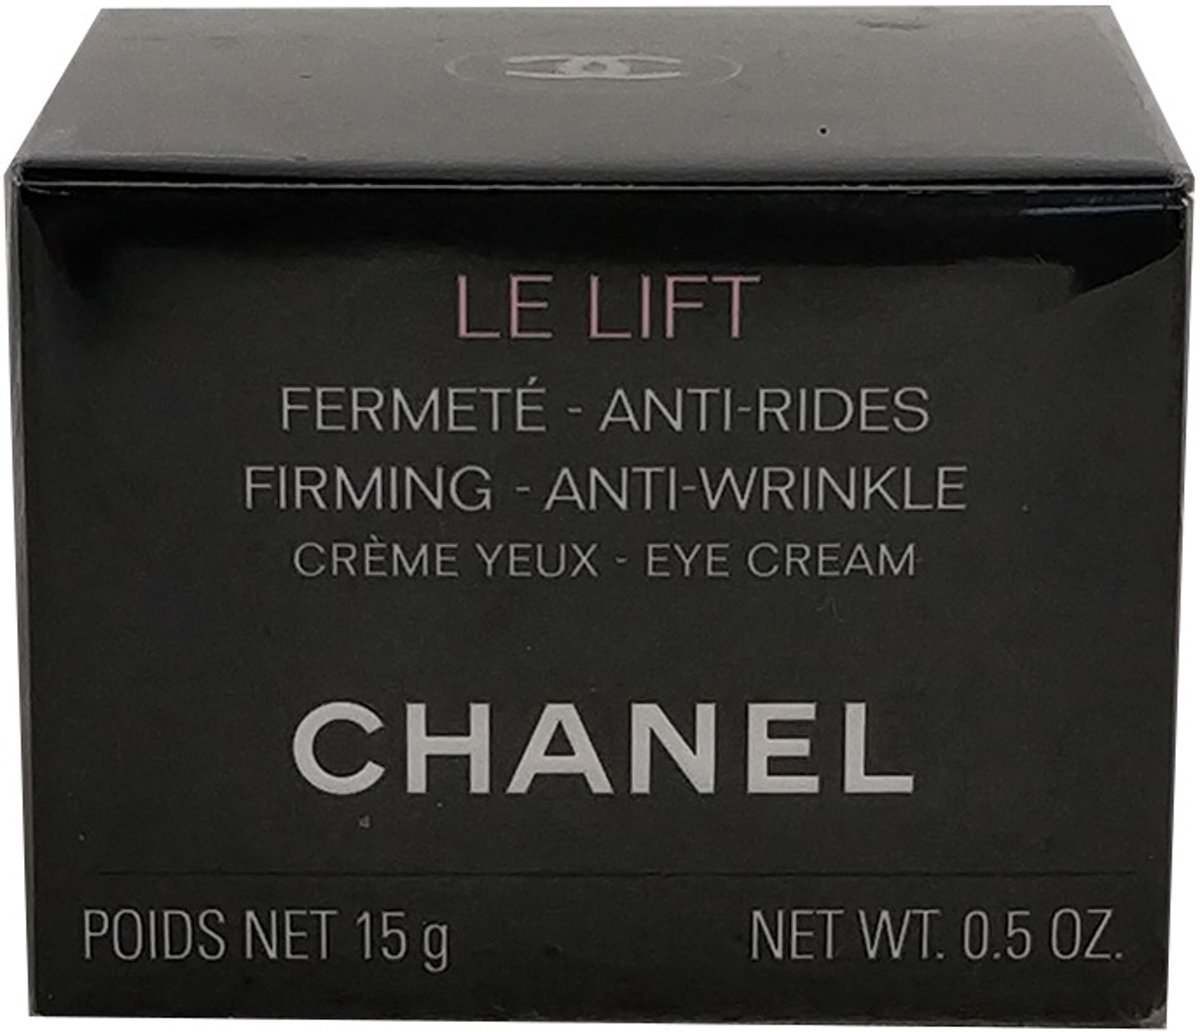 Chanel Le Lift Creme Yeux – Eye Cream 15 gr